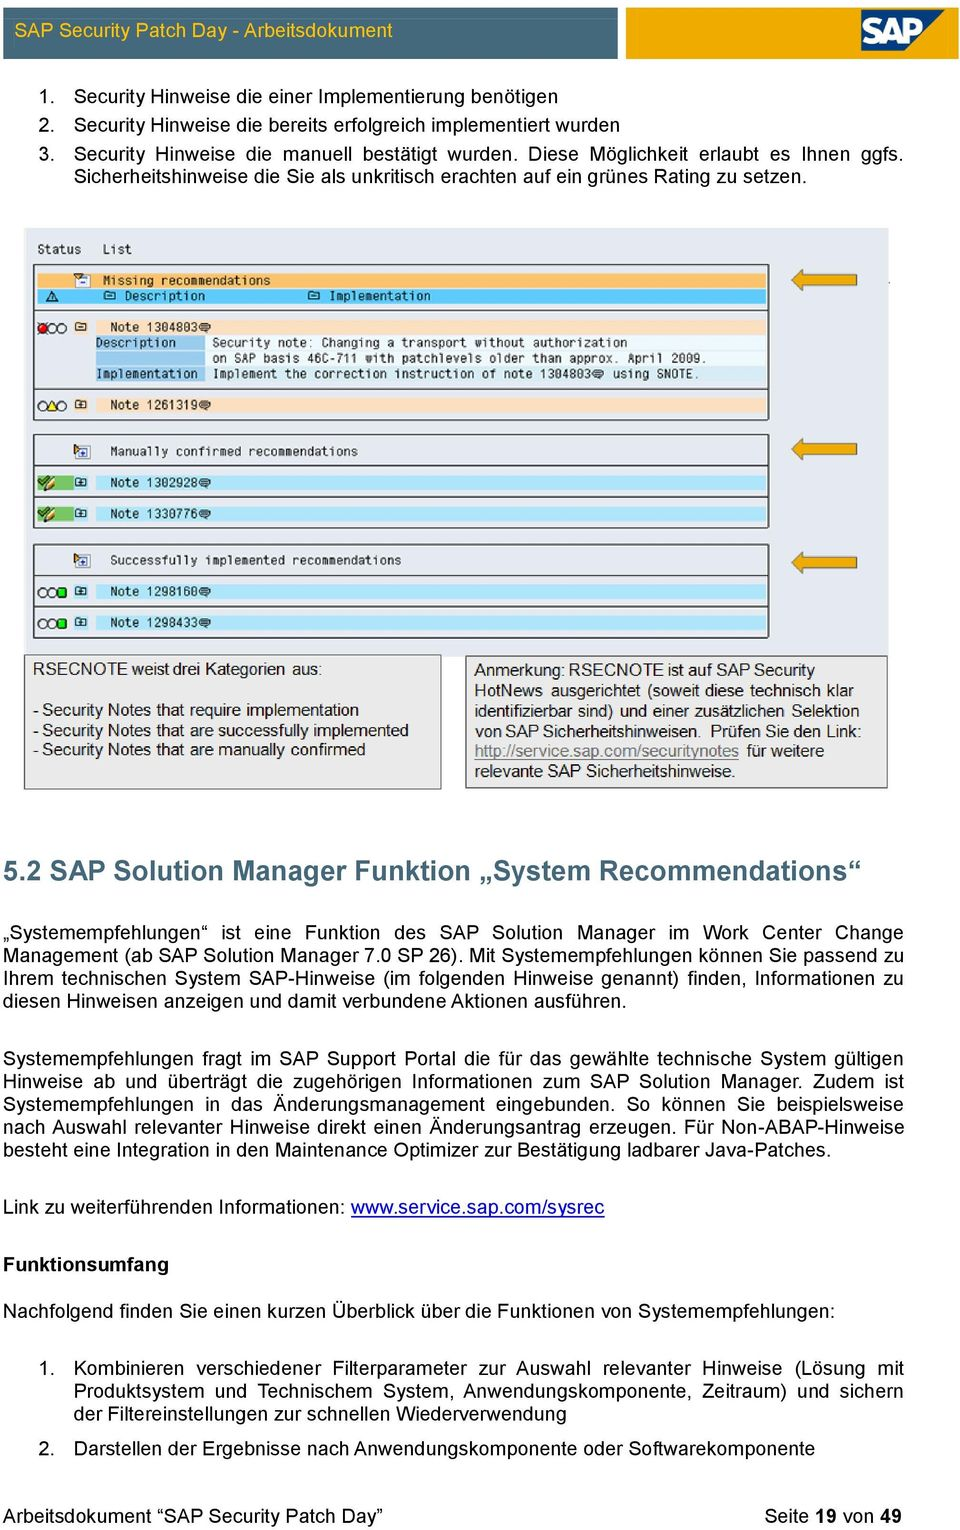 2 SAP Solution Manager Funktion System Recommendations Systemempfehlungen ist eine Funktion des SAP Solution Manager im Work Center Change Management (ab SAP Solution Manager 7.0 SP 26).